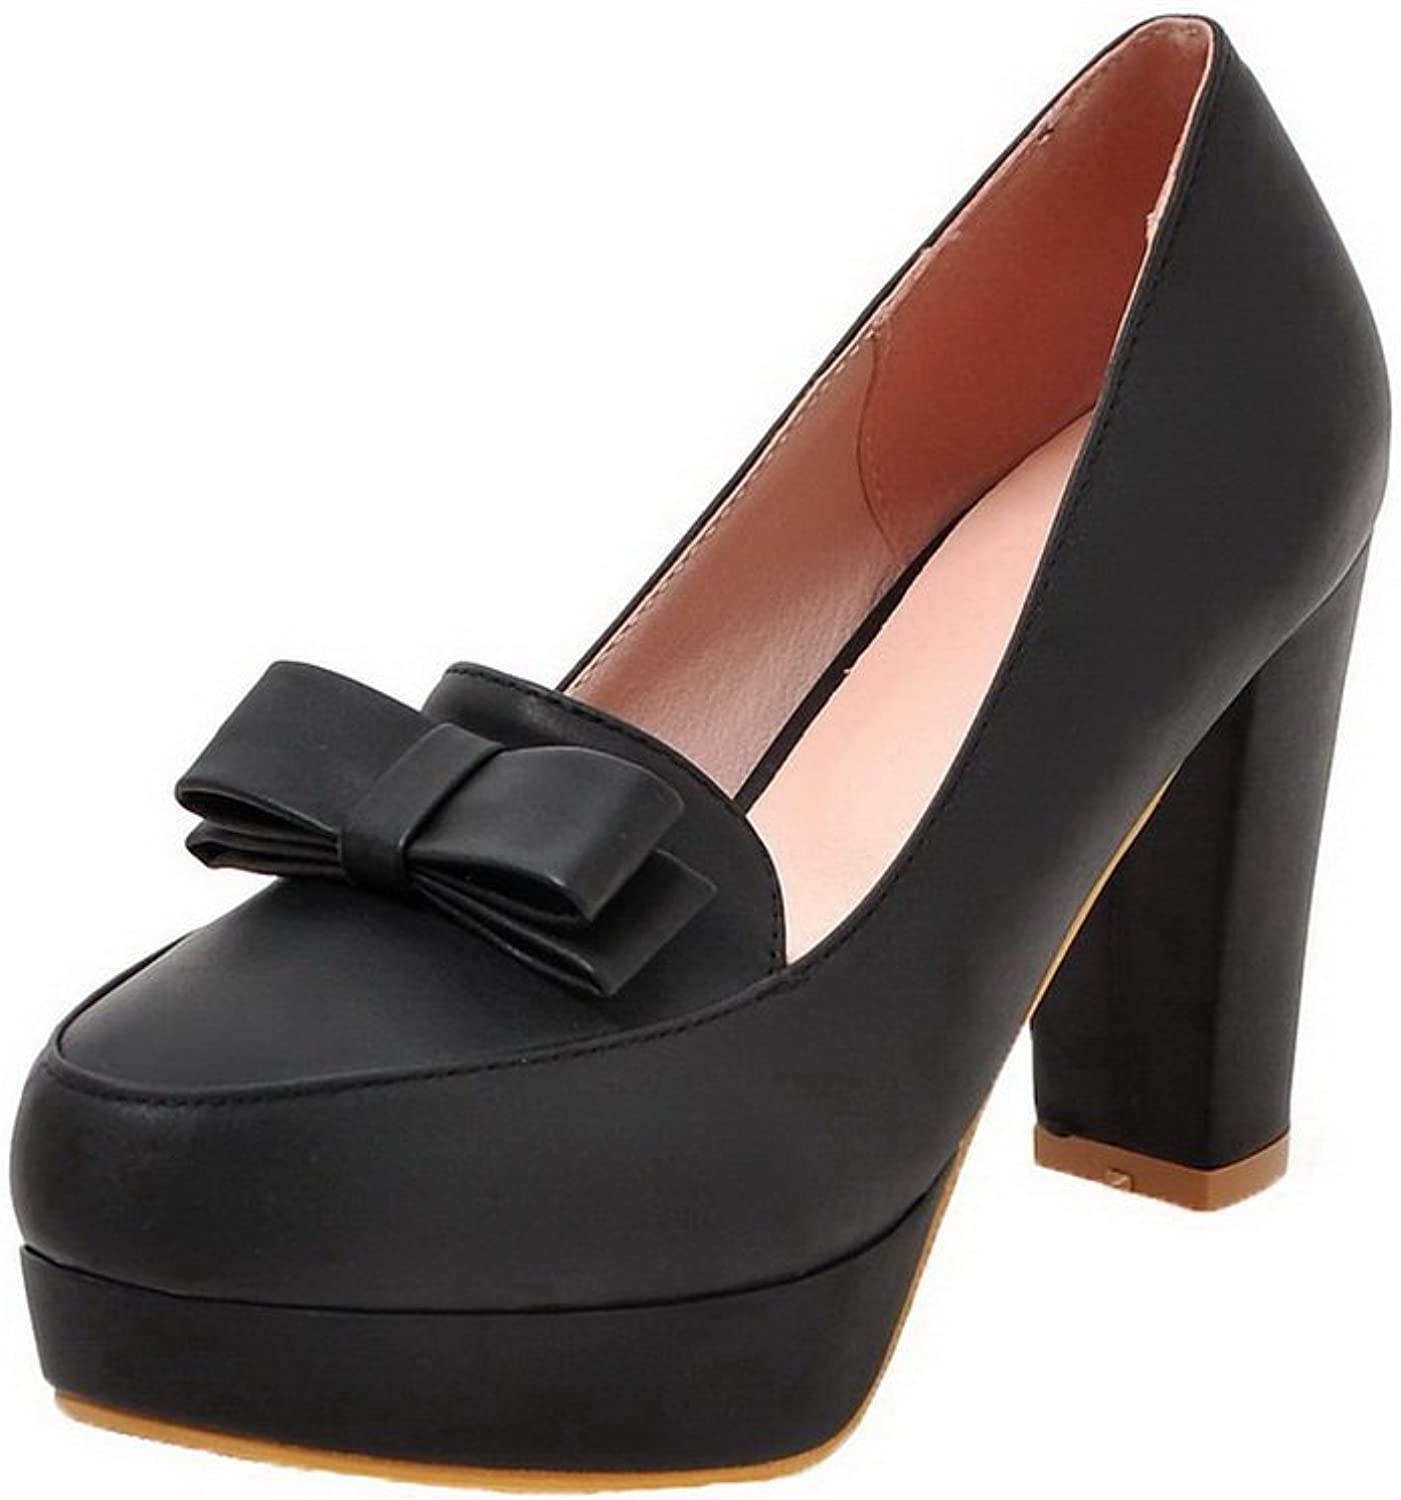 AmoonyFashion Women's Solid PU High-Heels Pull-On Closed-Toe Pumps-shoes